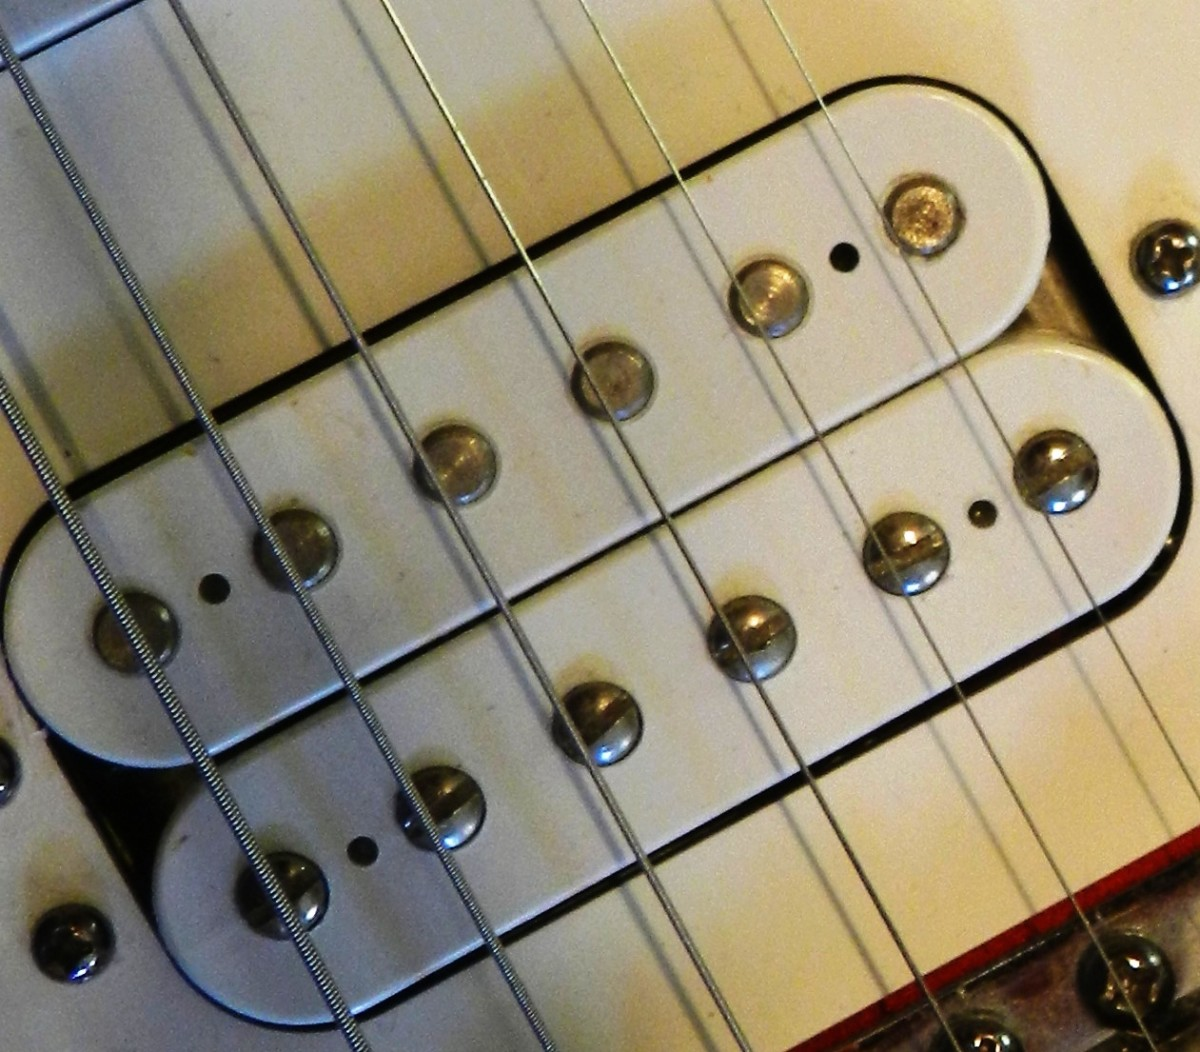 Humbucking pickups generally have a thicker sound compared to single coils.